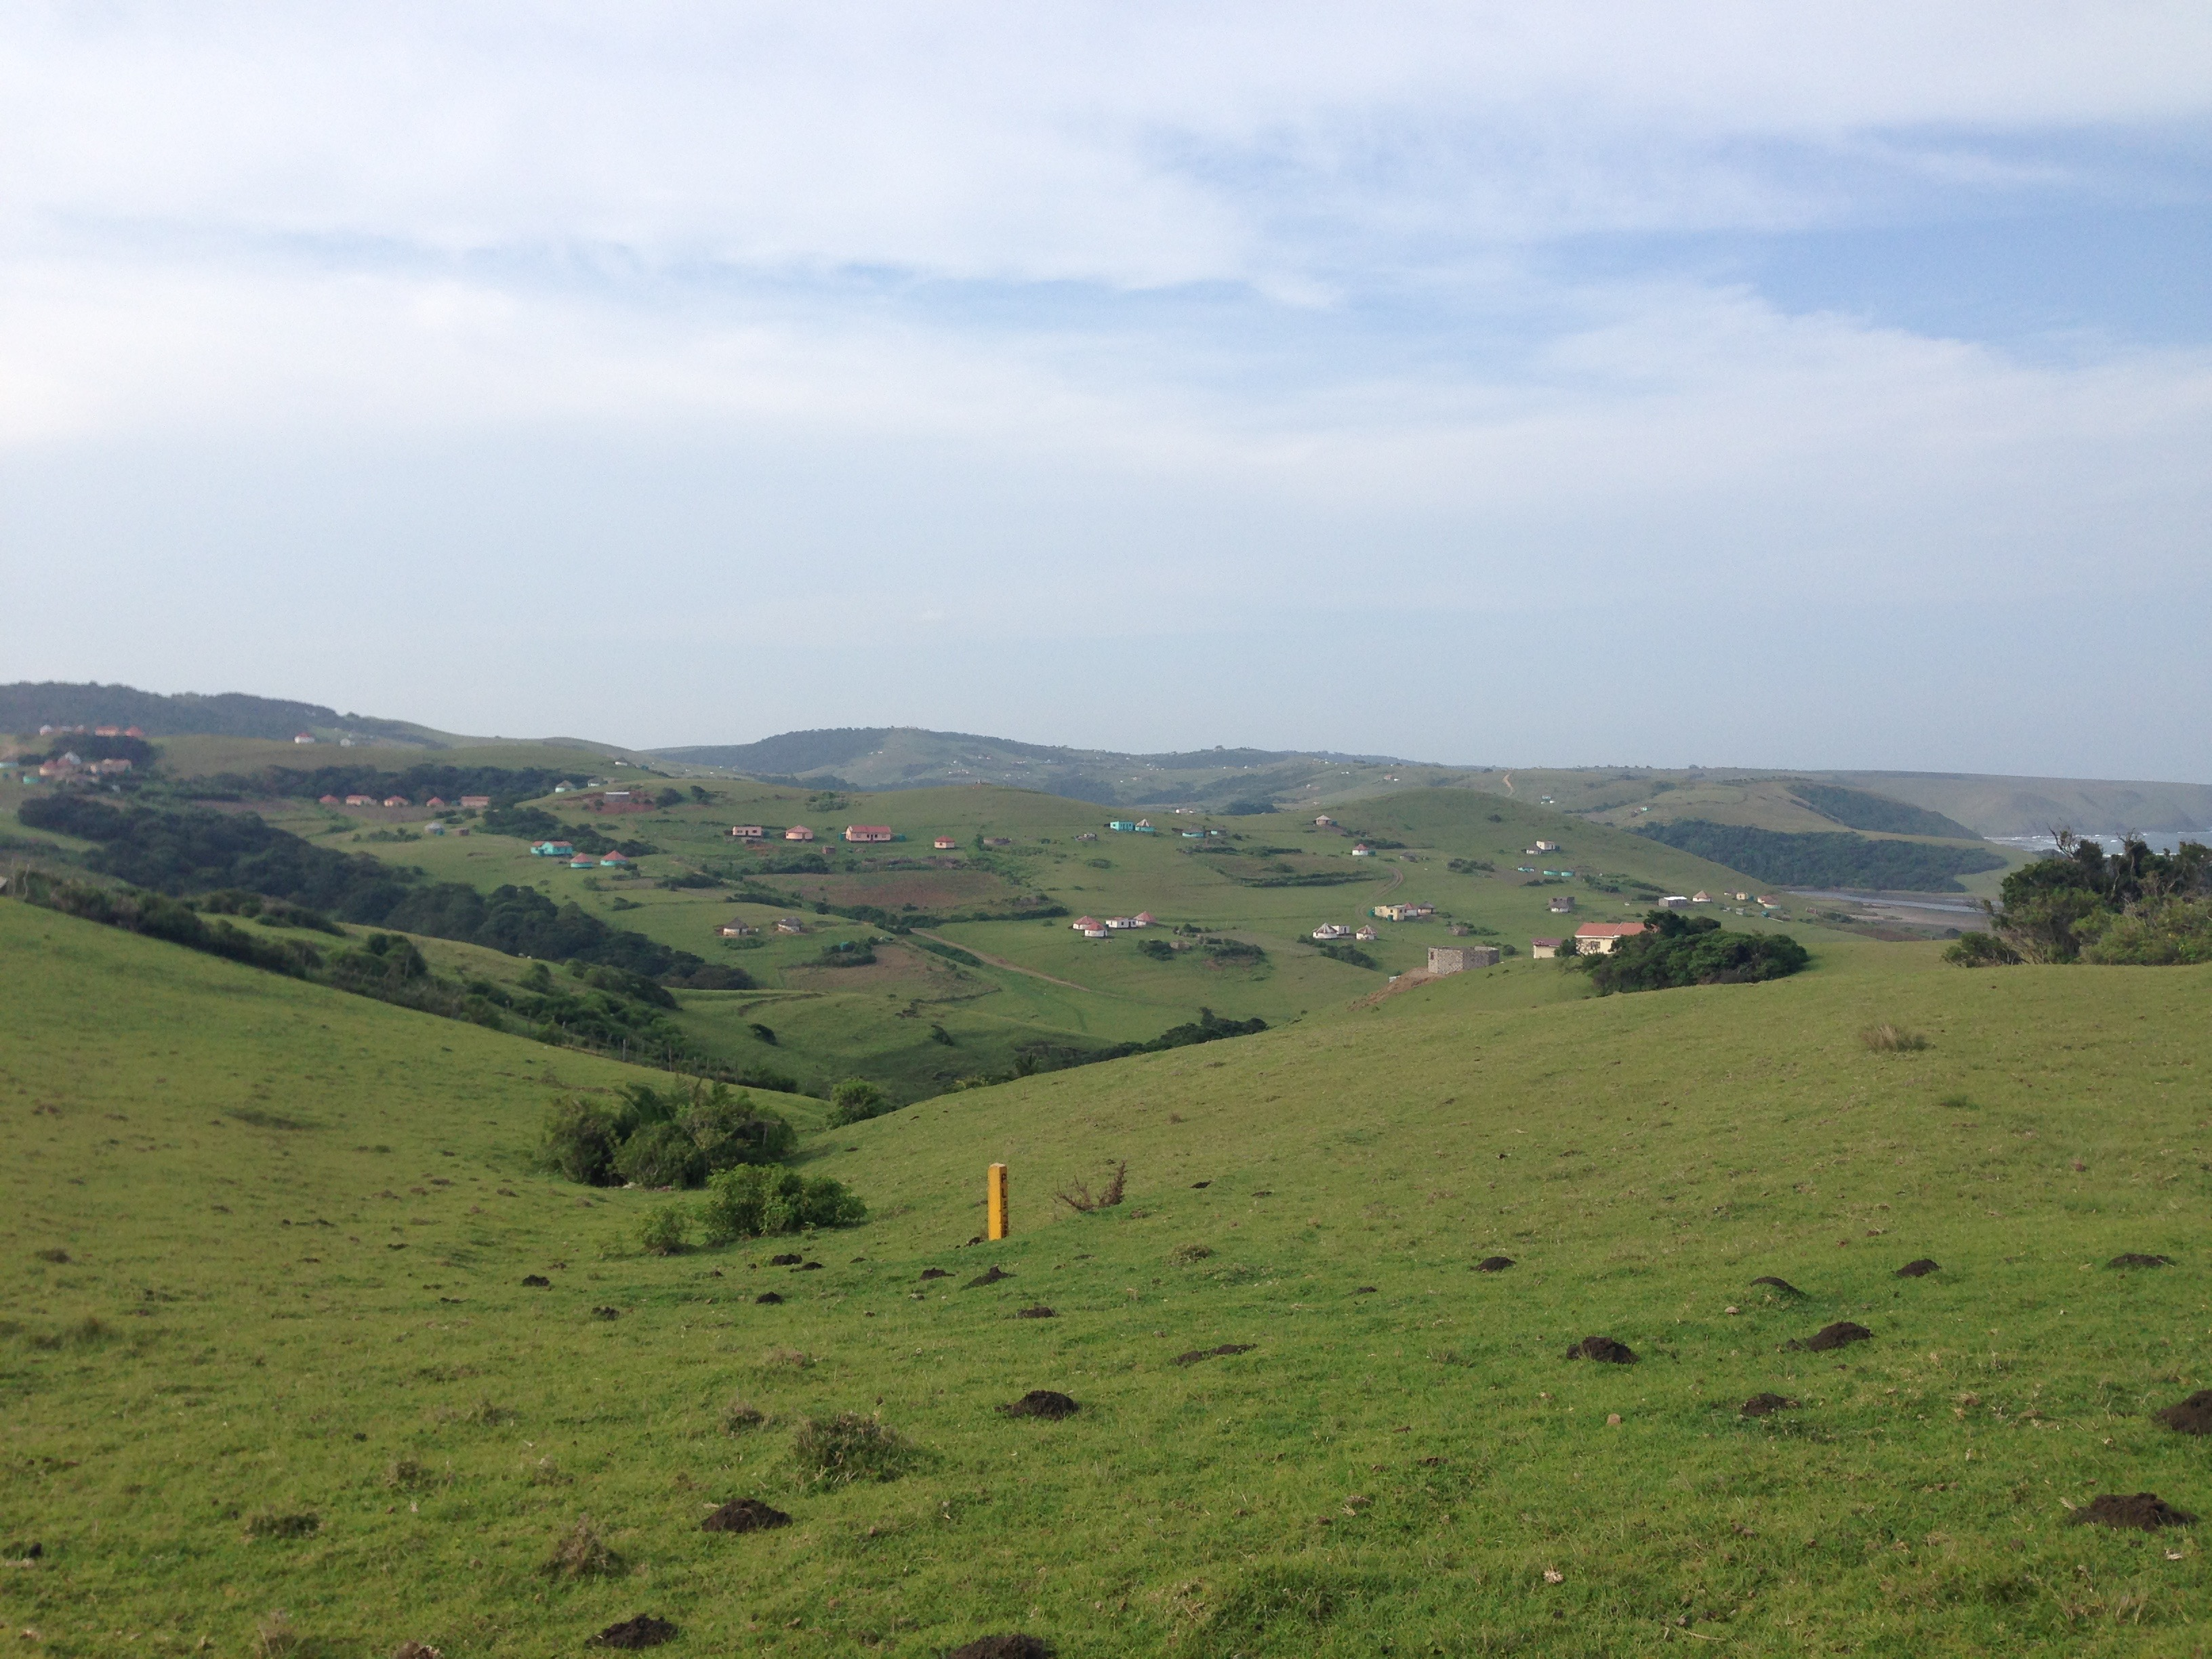 Coming from Nqileni Village, we start the walk over the hills and through the valleys towards the clinic.